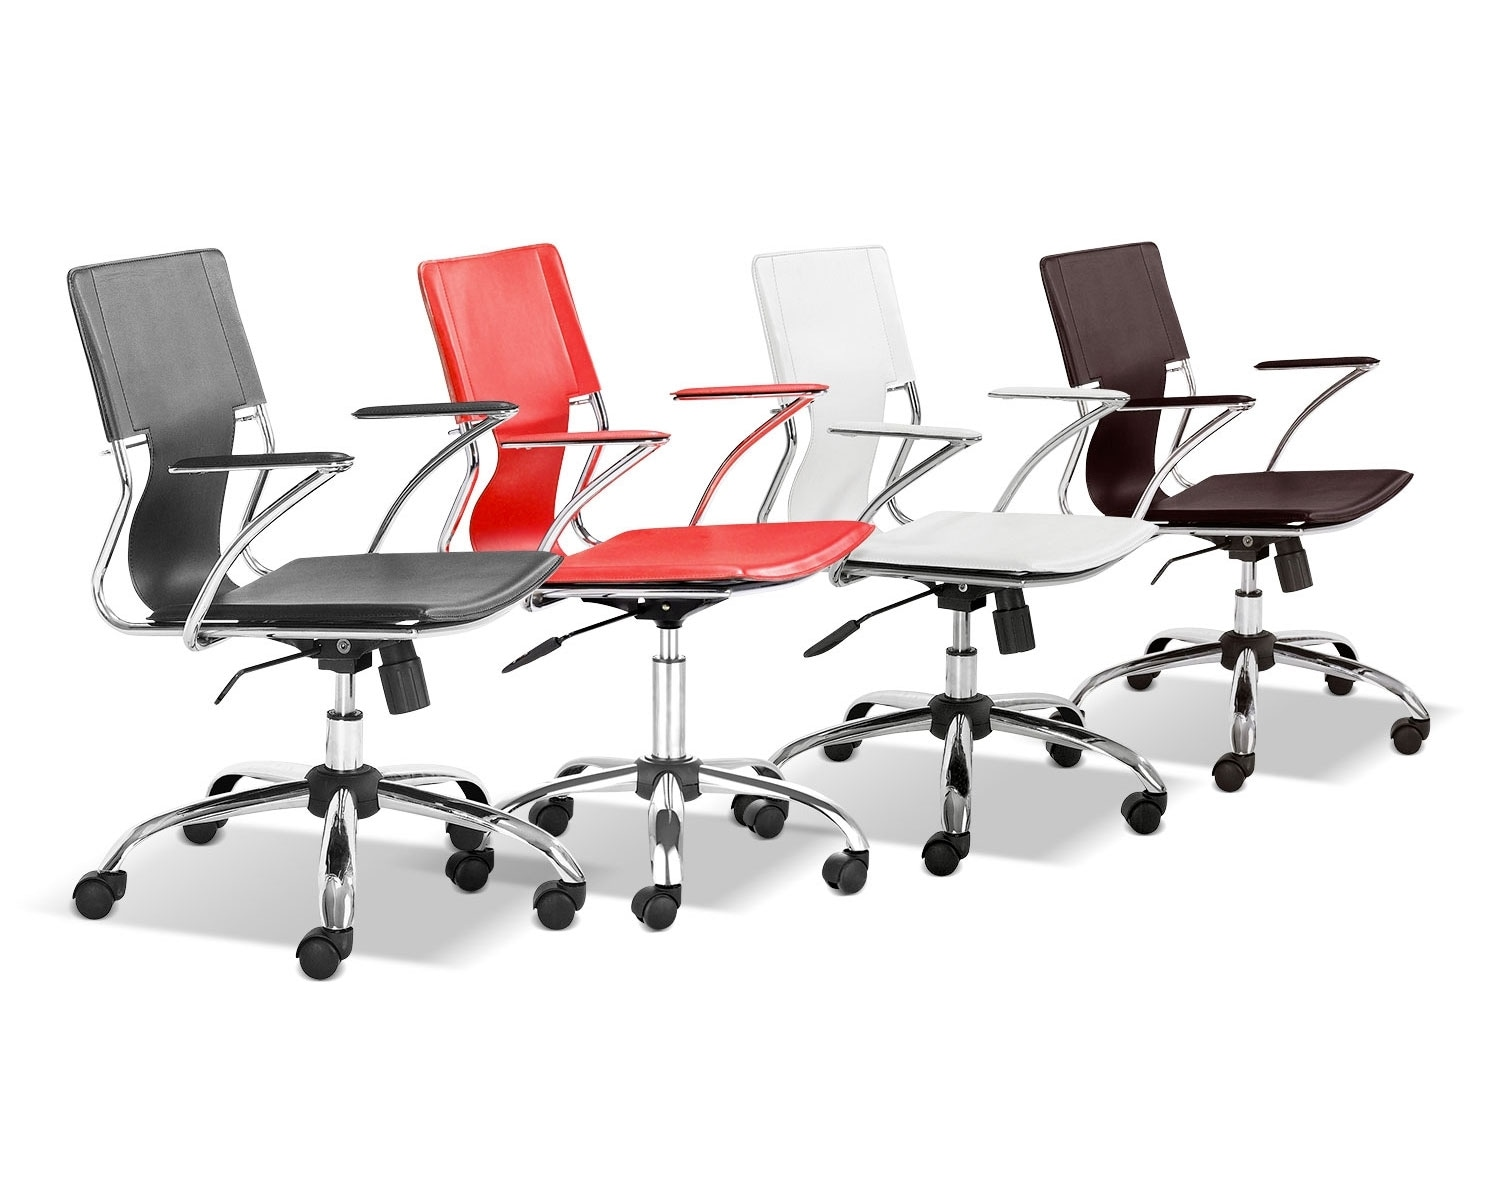 Home Office Furniture | Value City | Value City Furniture